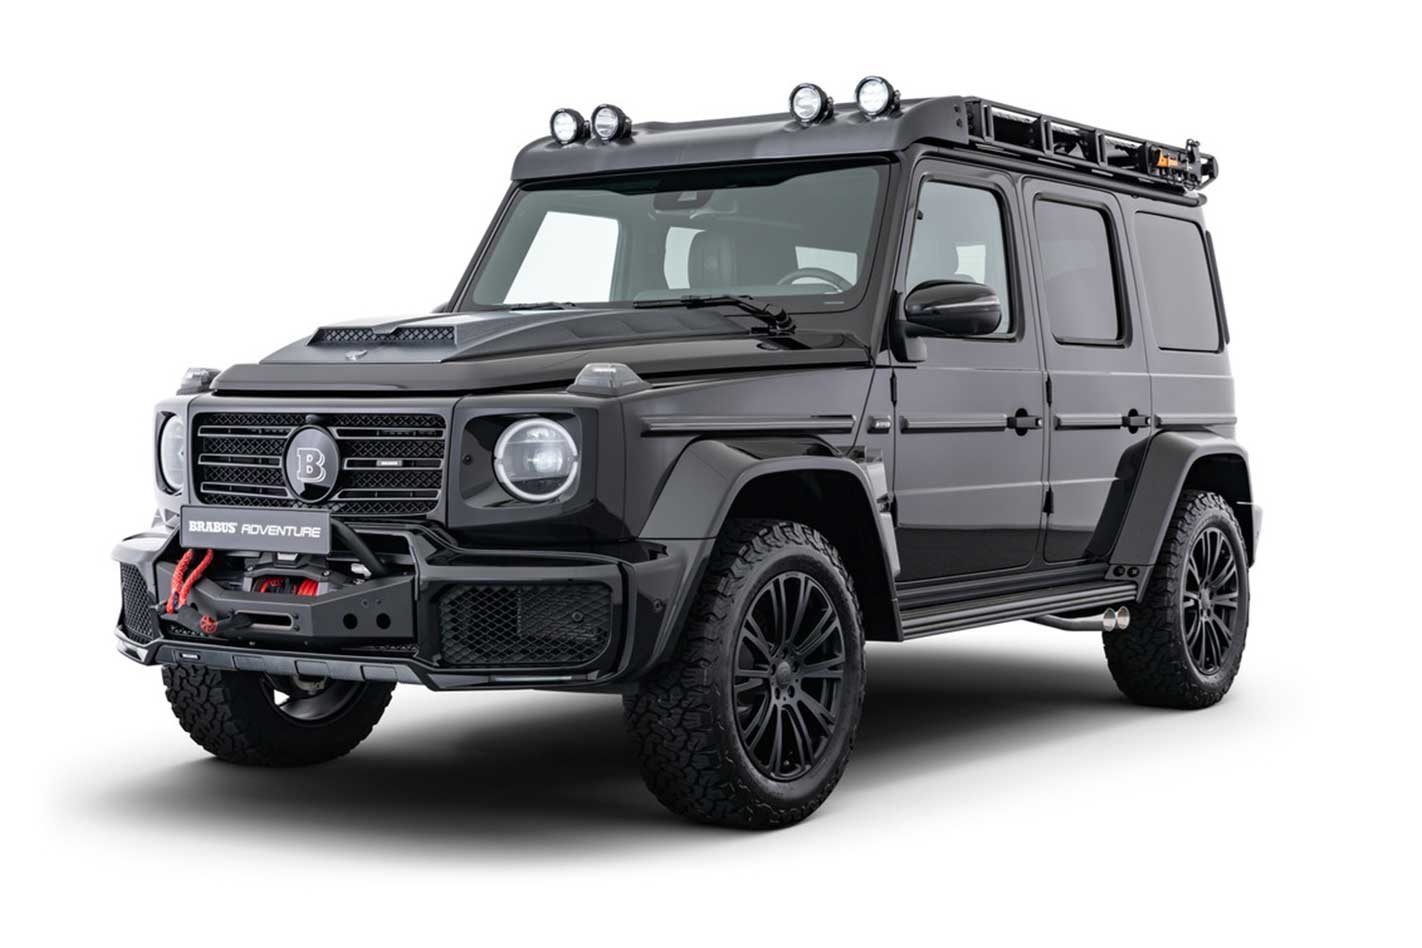 Brabus introduces an Adventure Package for the G-Wagen